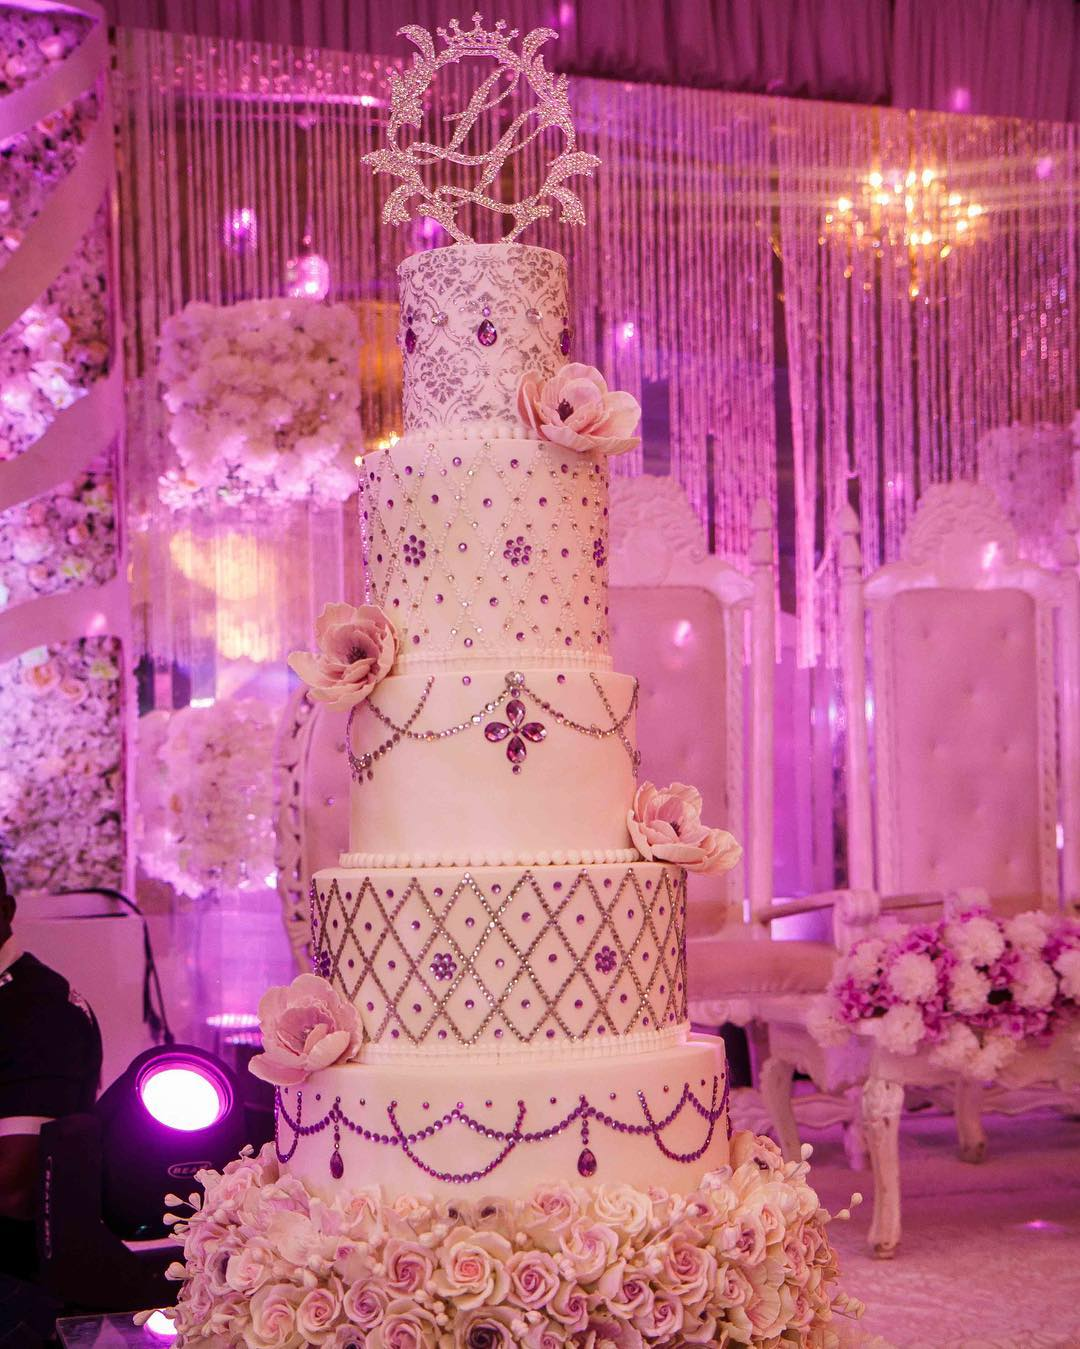 The Exquisite Looking Wedding Cake For Their Reception Was Designed By Dewdrops A Showstopper At